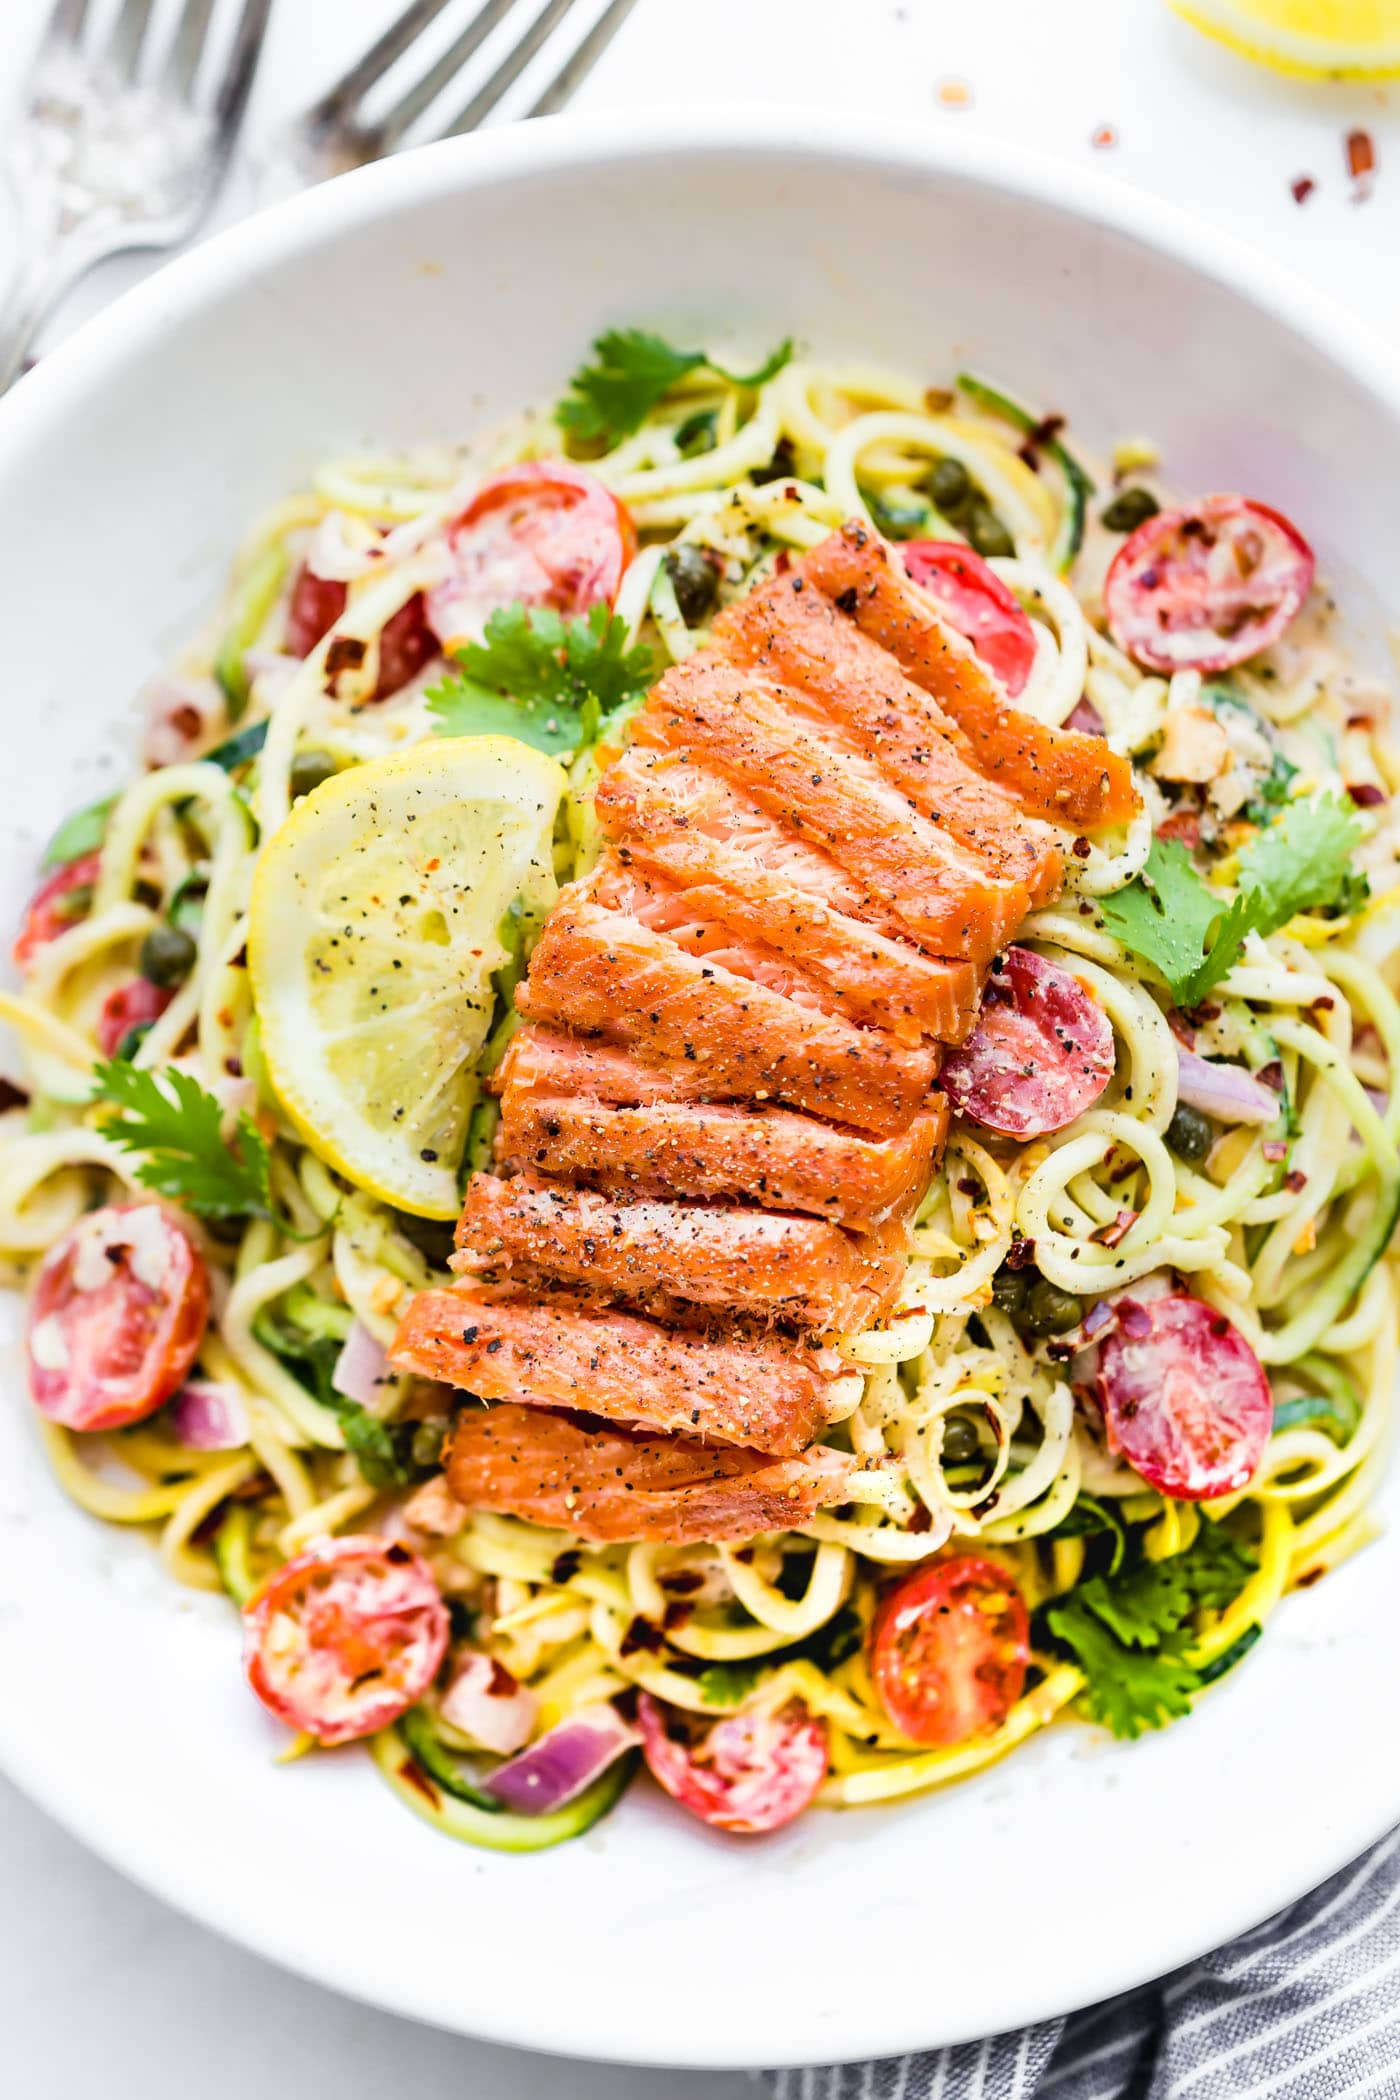 Cajun Smoked Salmon Pasta Salad served in a white bowl with cilantro and a lemon wedge as garnish